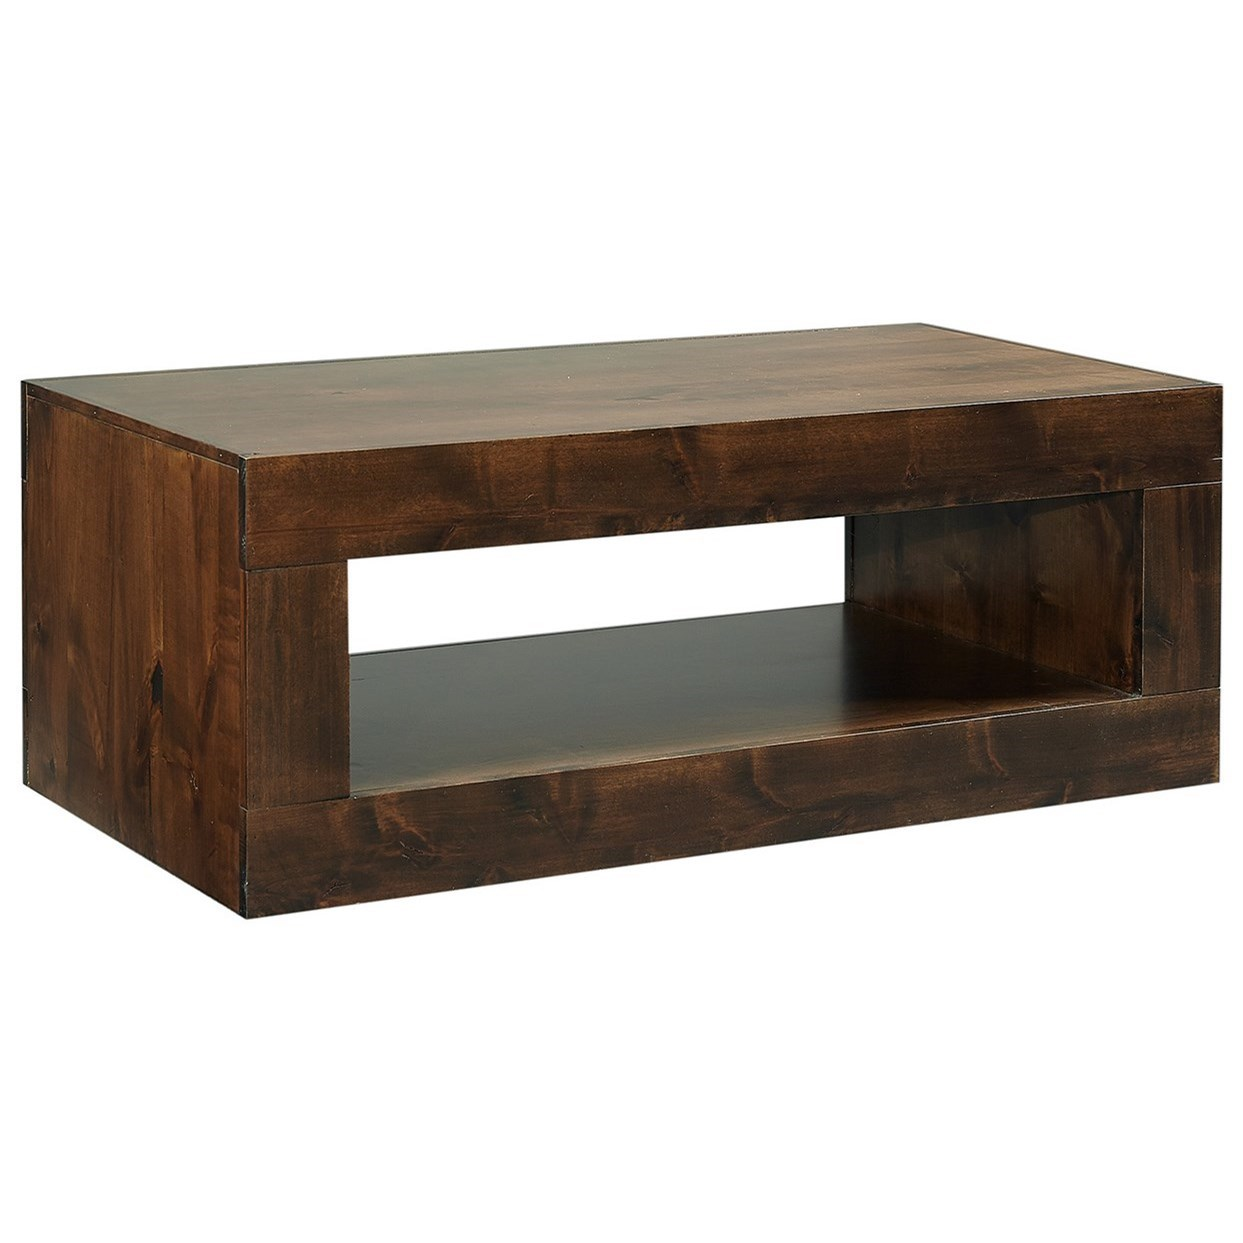 Nova Alder Cocktail Table by Aspenhome at Stoney Creek Furniture